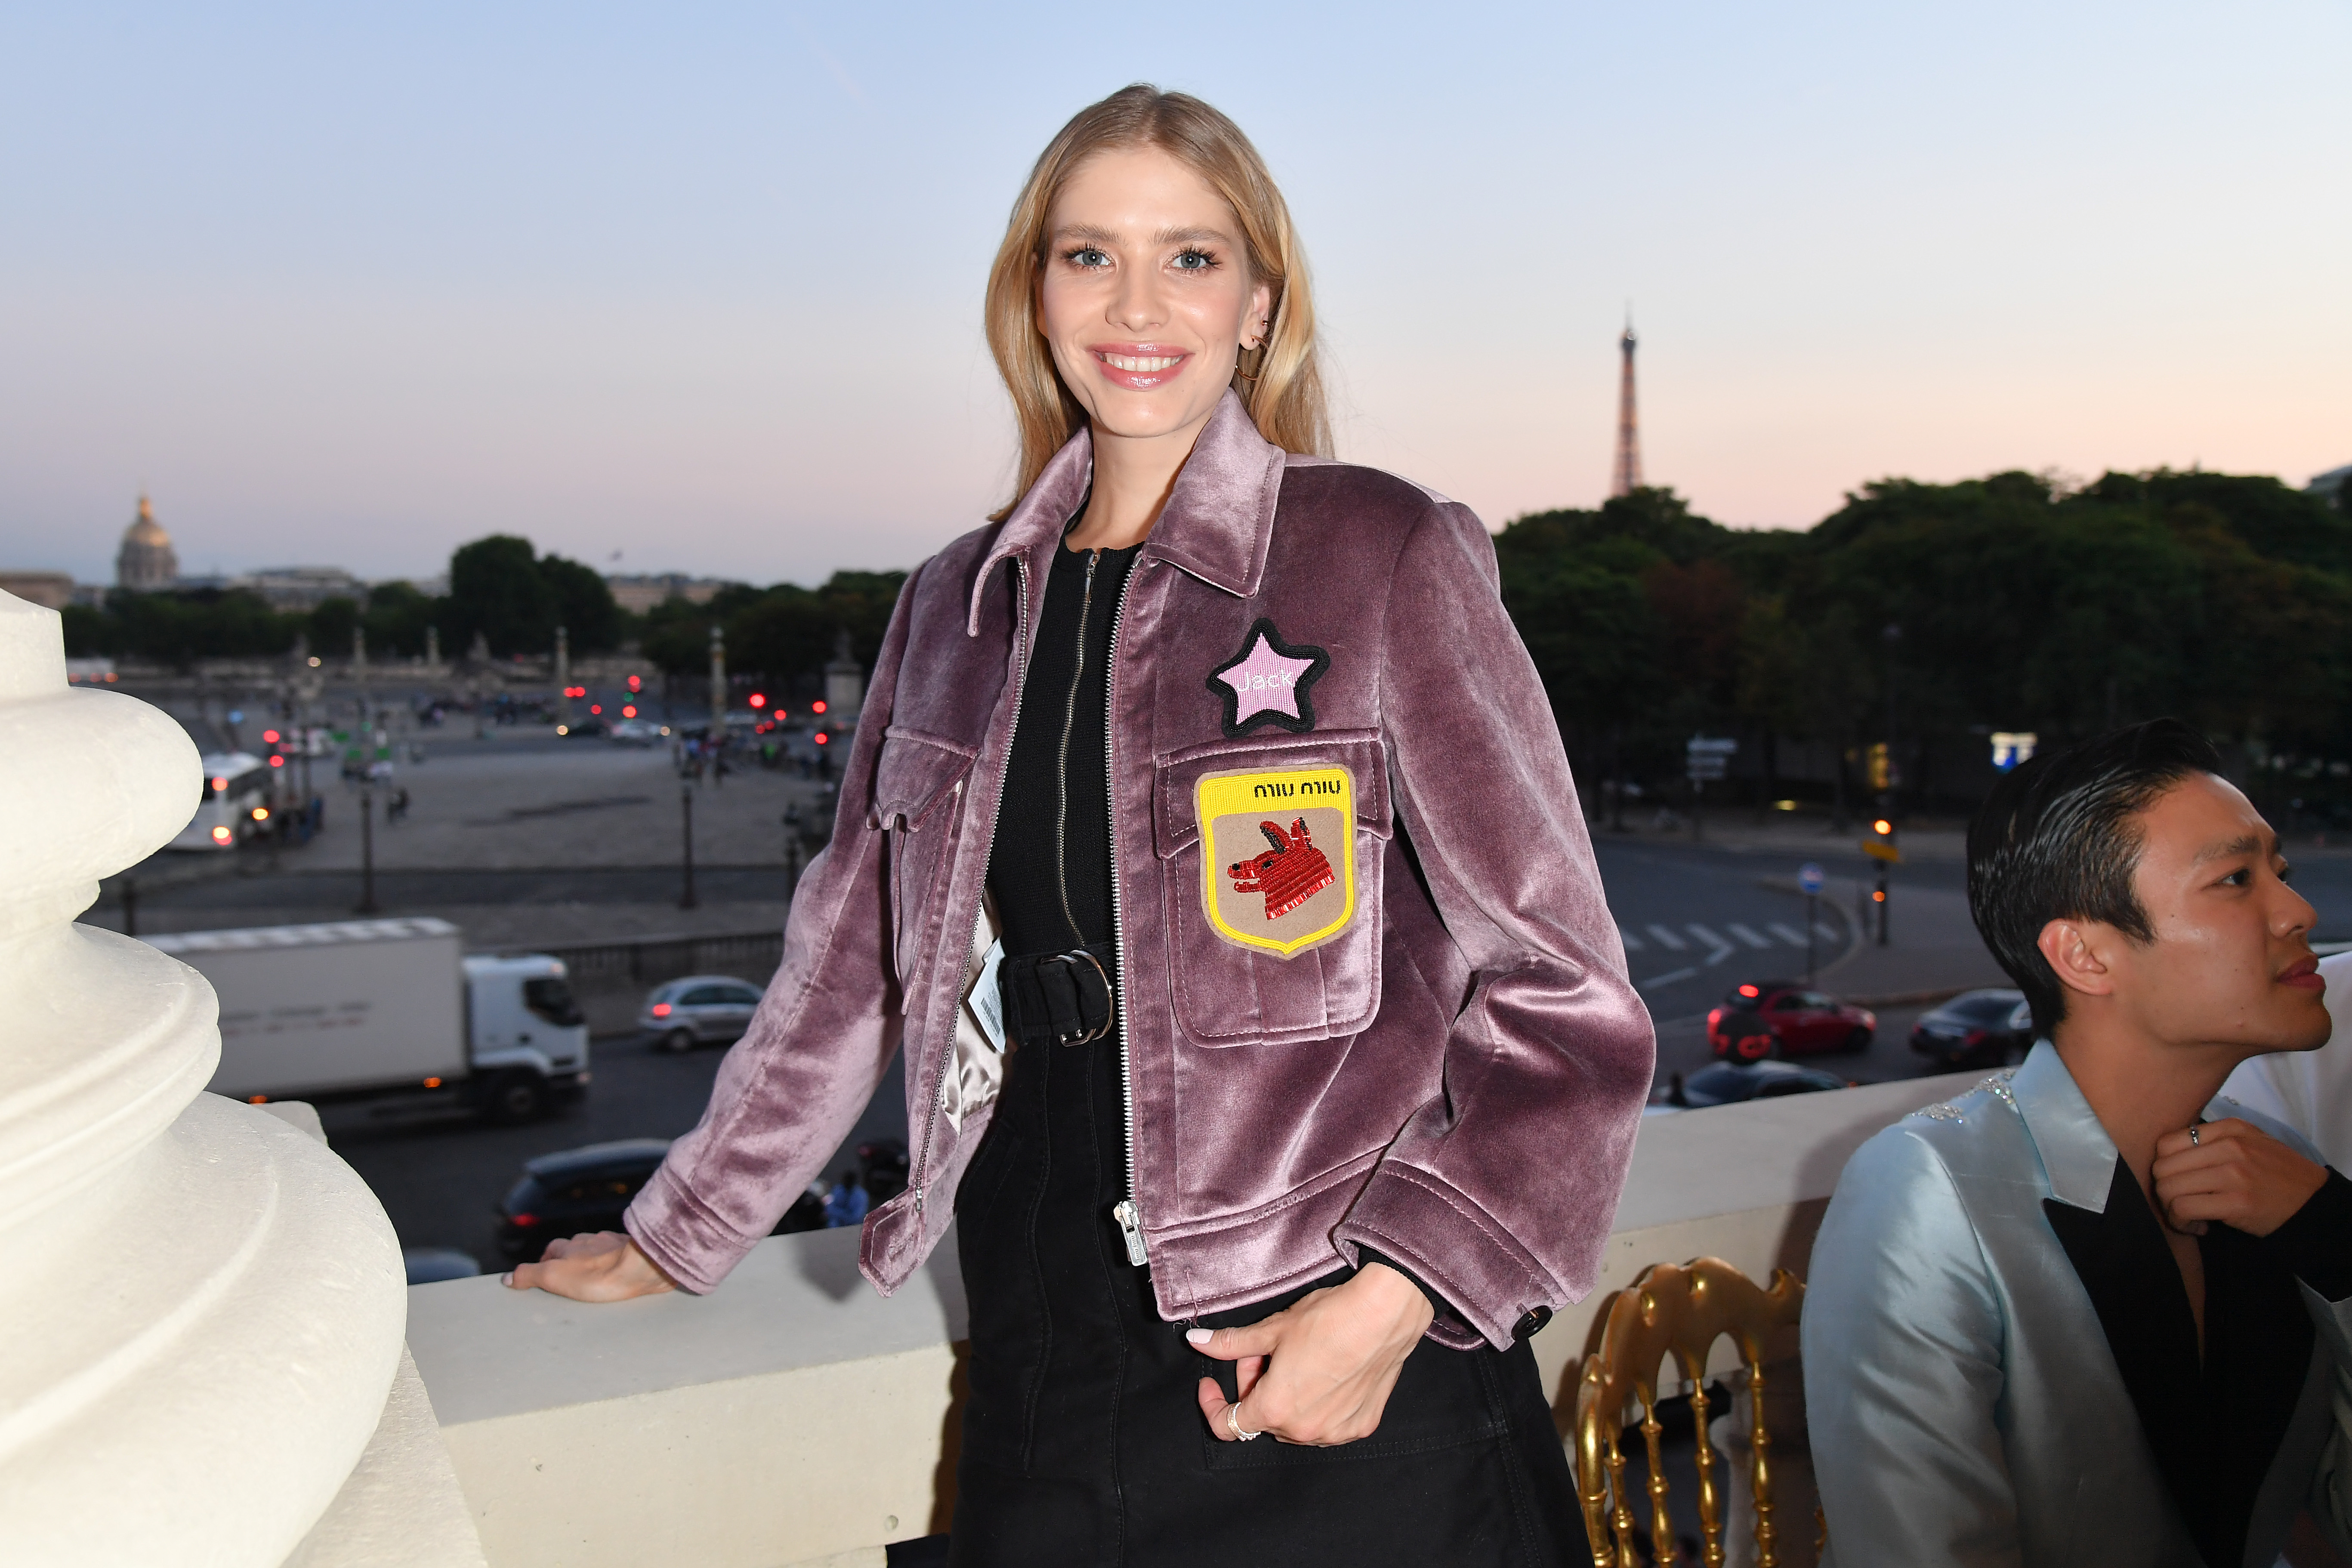 PARIS, FRANCE - JULY 02:  Elena Perminova attends Miu Miu Cruise Collection cocktail & party as part of Haute Couture Paris Fashion Week on July 2, 2017 in Paris, France.  (Photo by Dominique Charriau/WireImage) *** Local Caption *** Elena Perminova